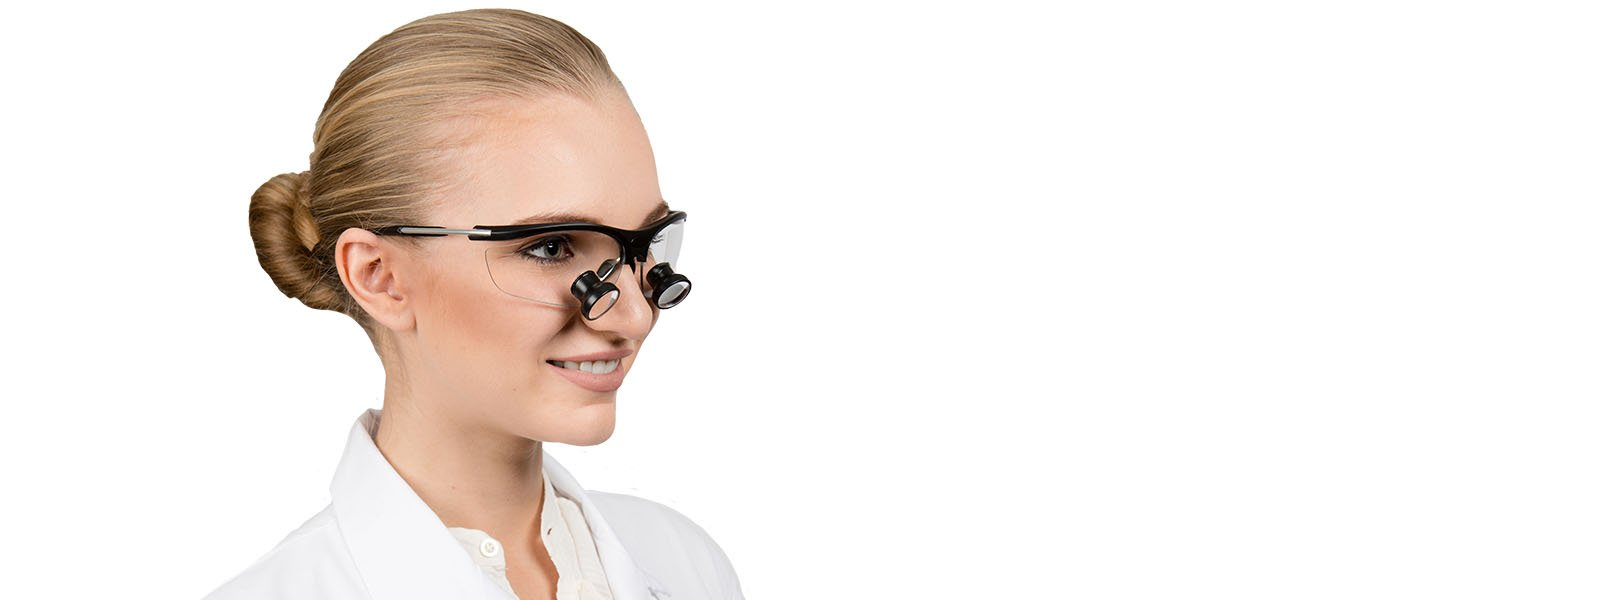 About Schultz Optical dental loupes surgical loupes and headlight